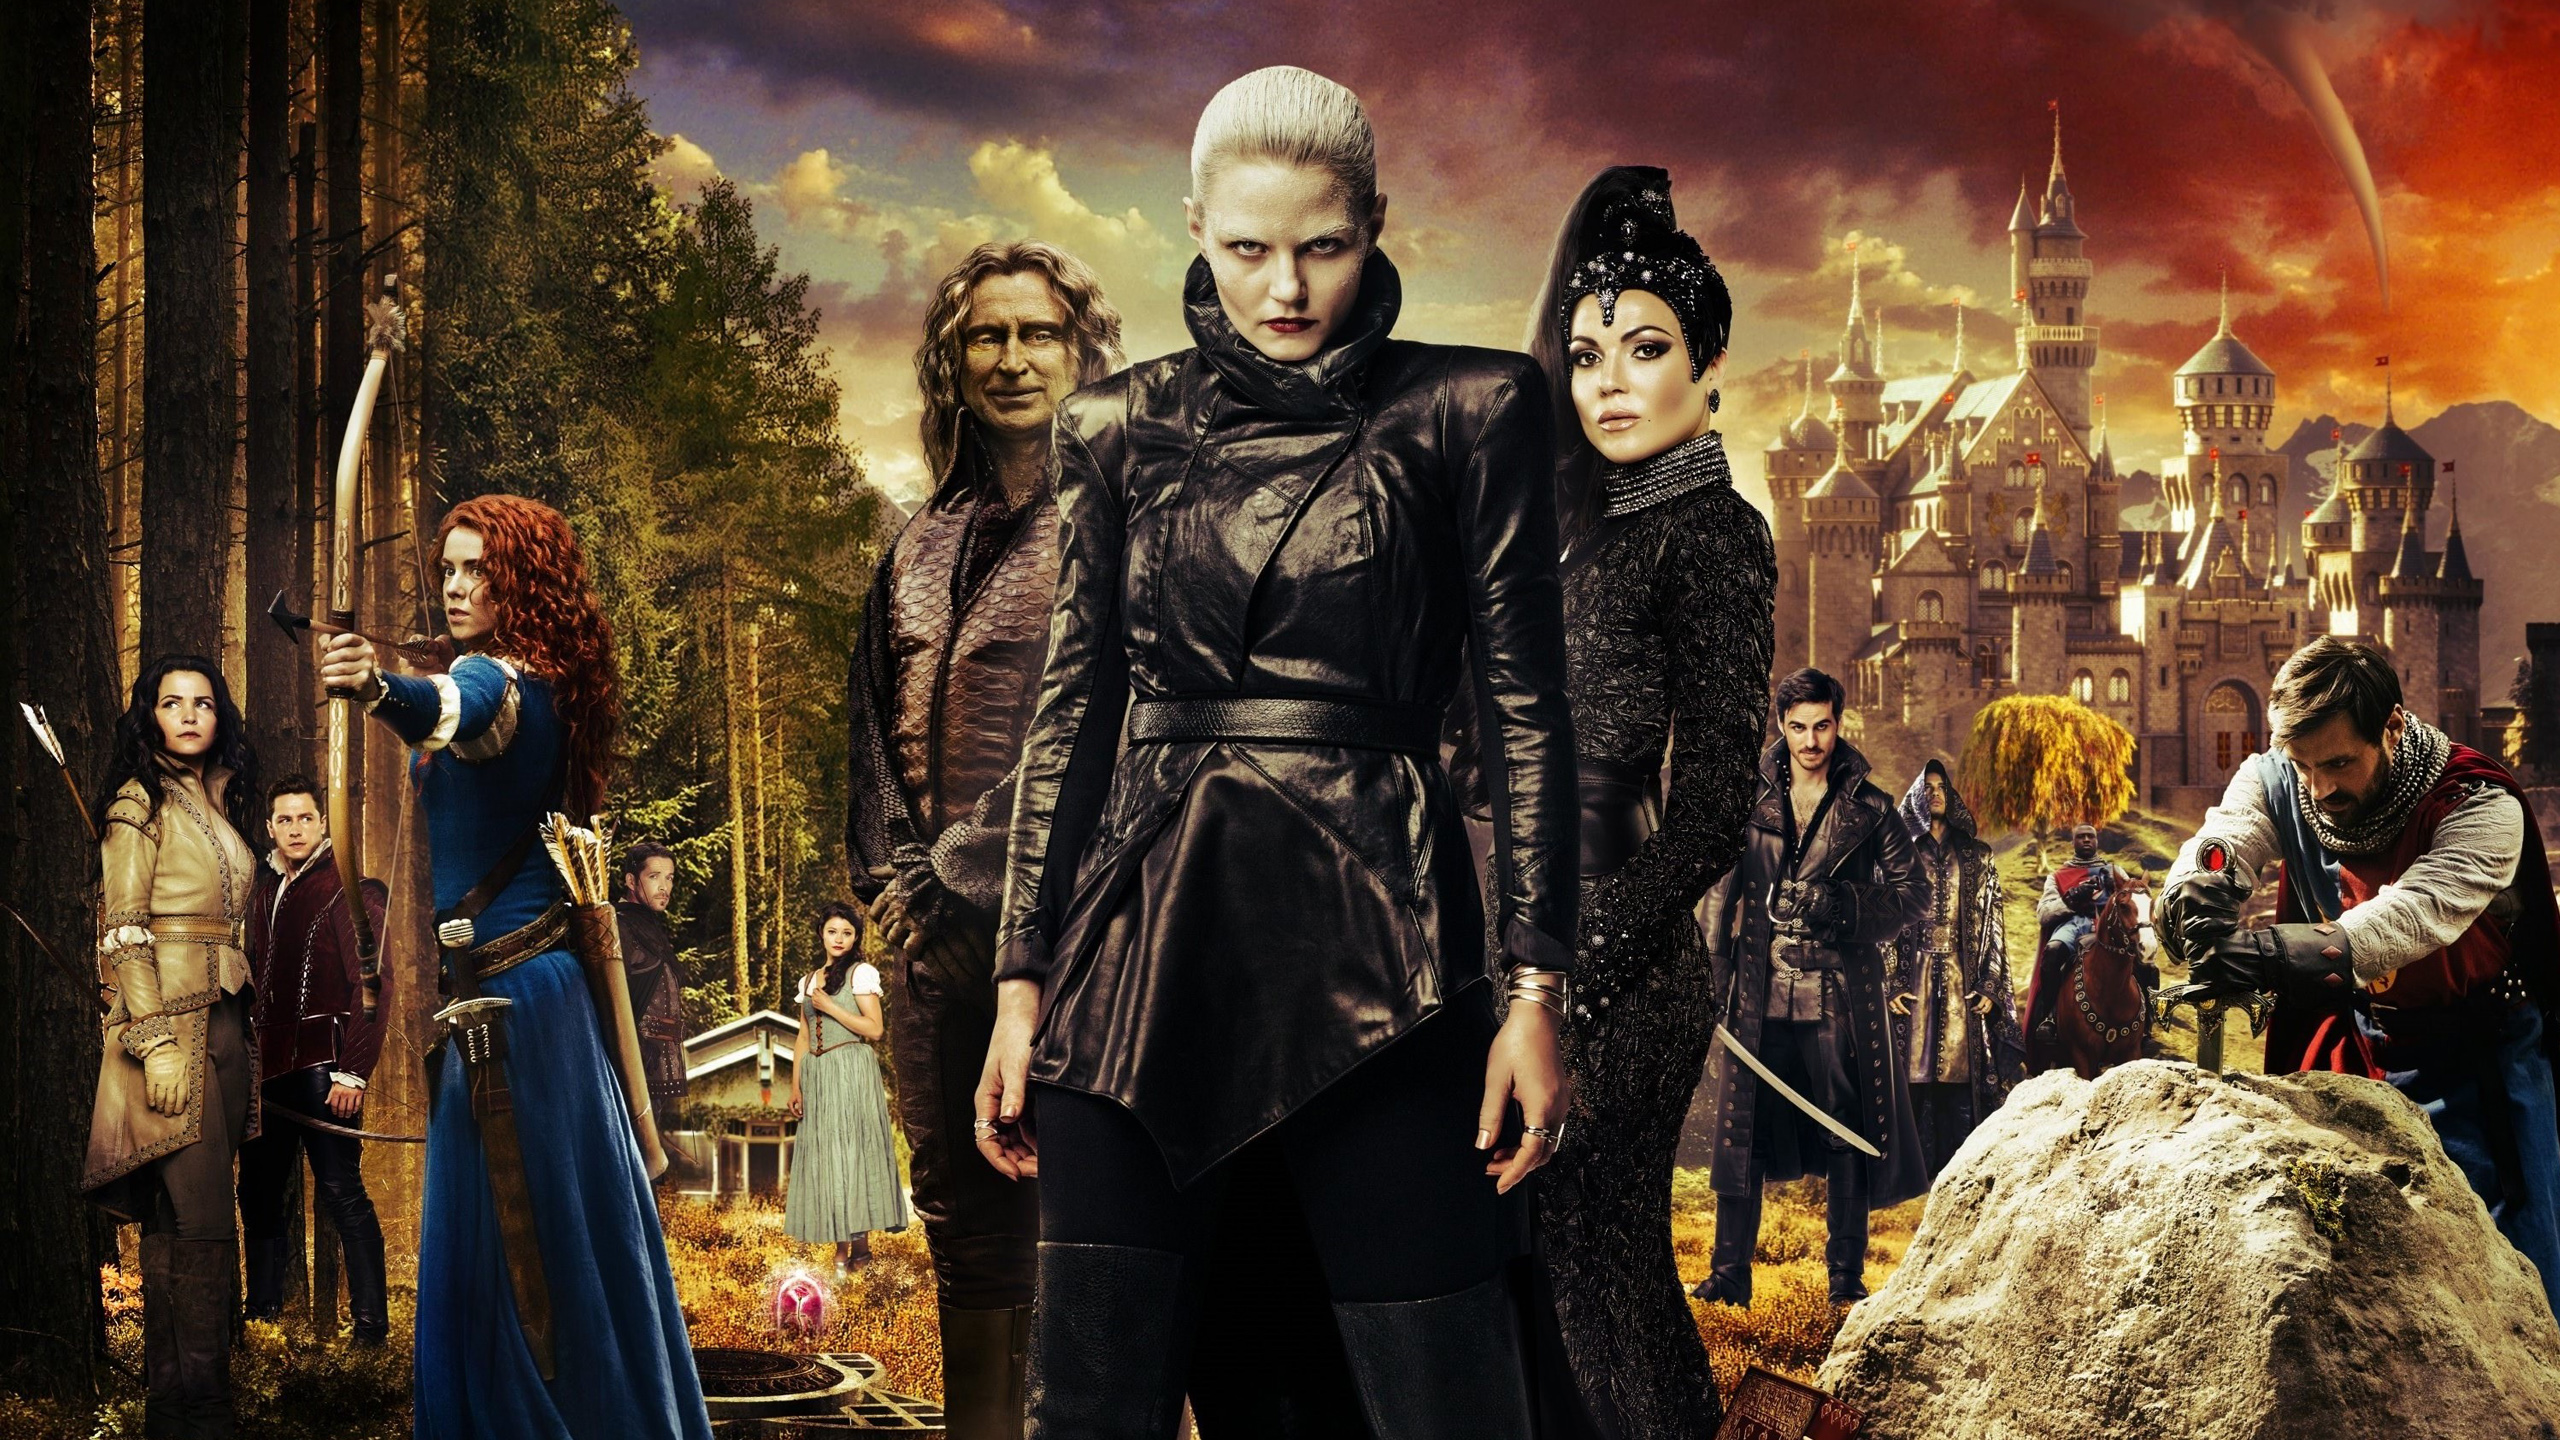 Free Download Once Upon A Time Season 5 Wallpapers Hd Wallpapers